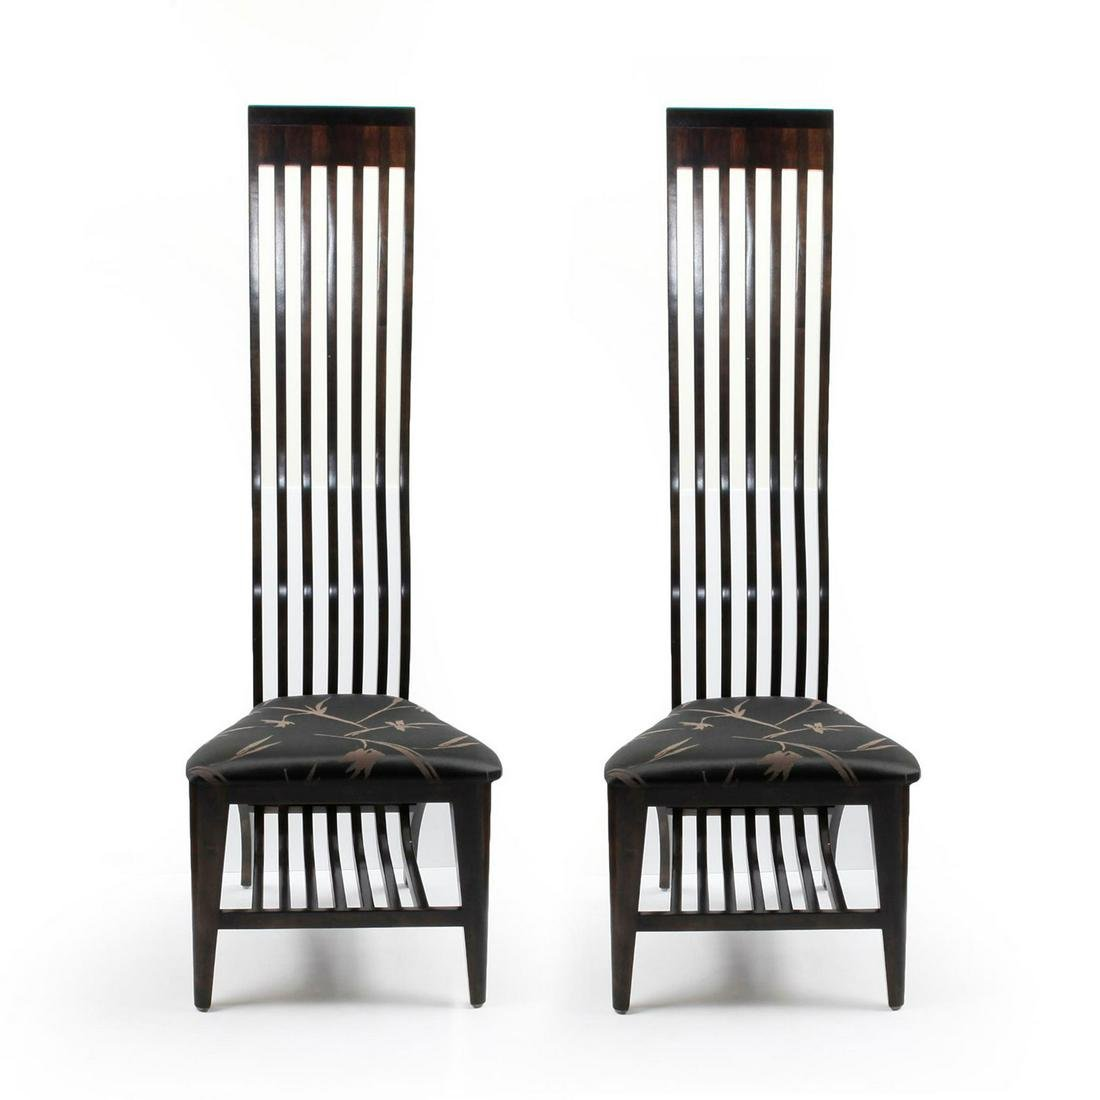 2 CONTEMPORARY JAPONESQUE ACCENT CHAIRS